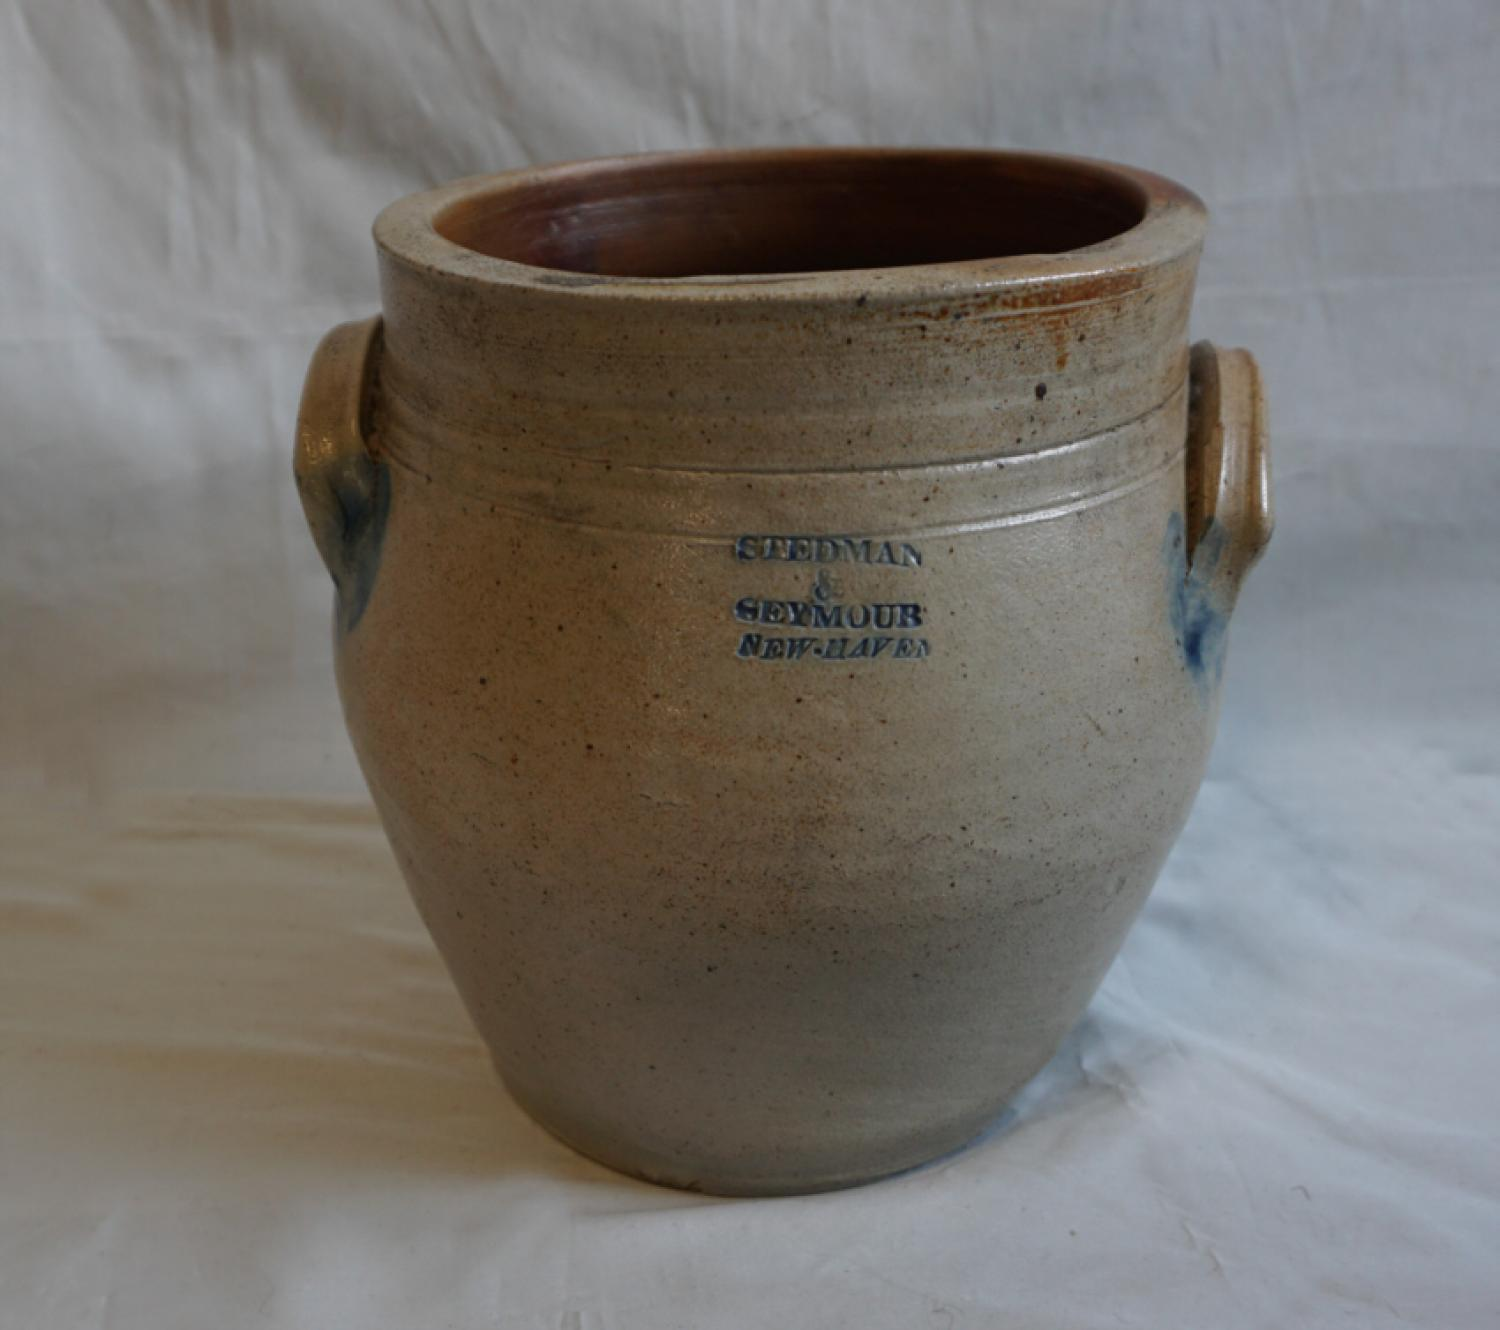 19thc Stedman and Seymour stoneware crock New Haven CT